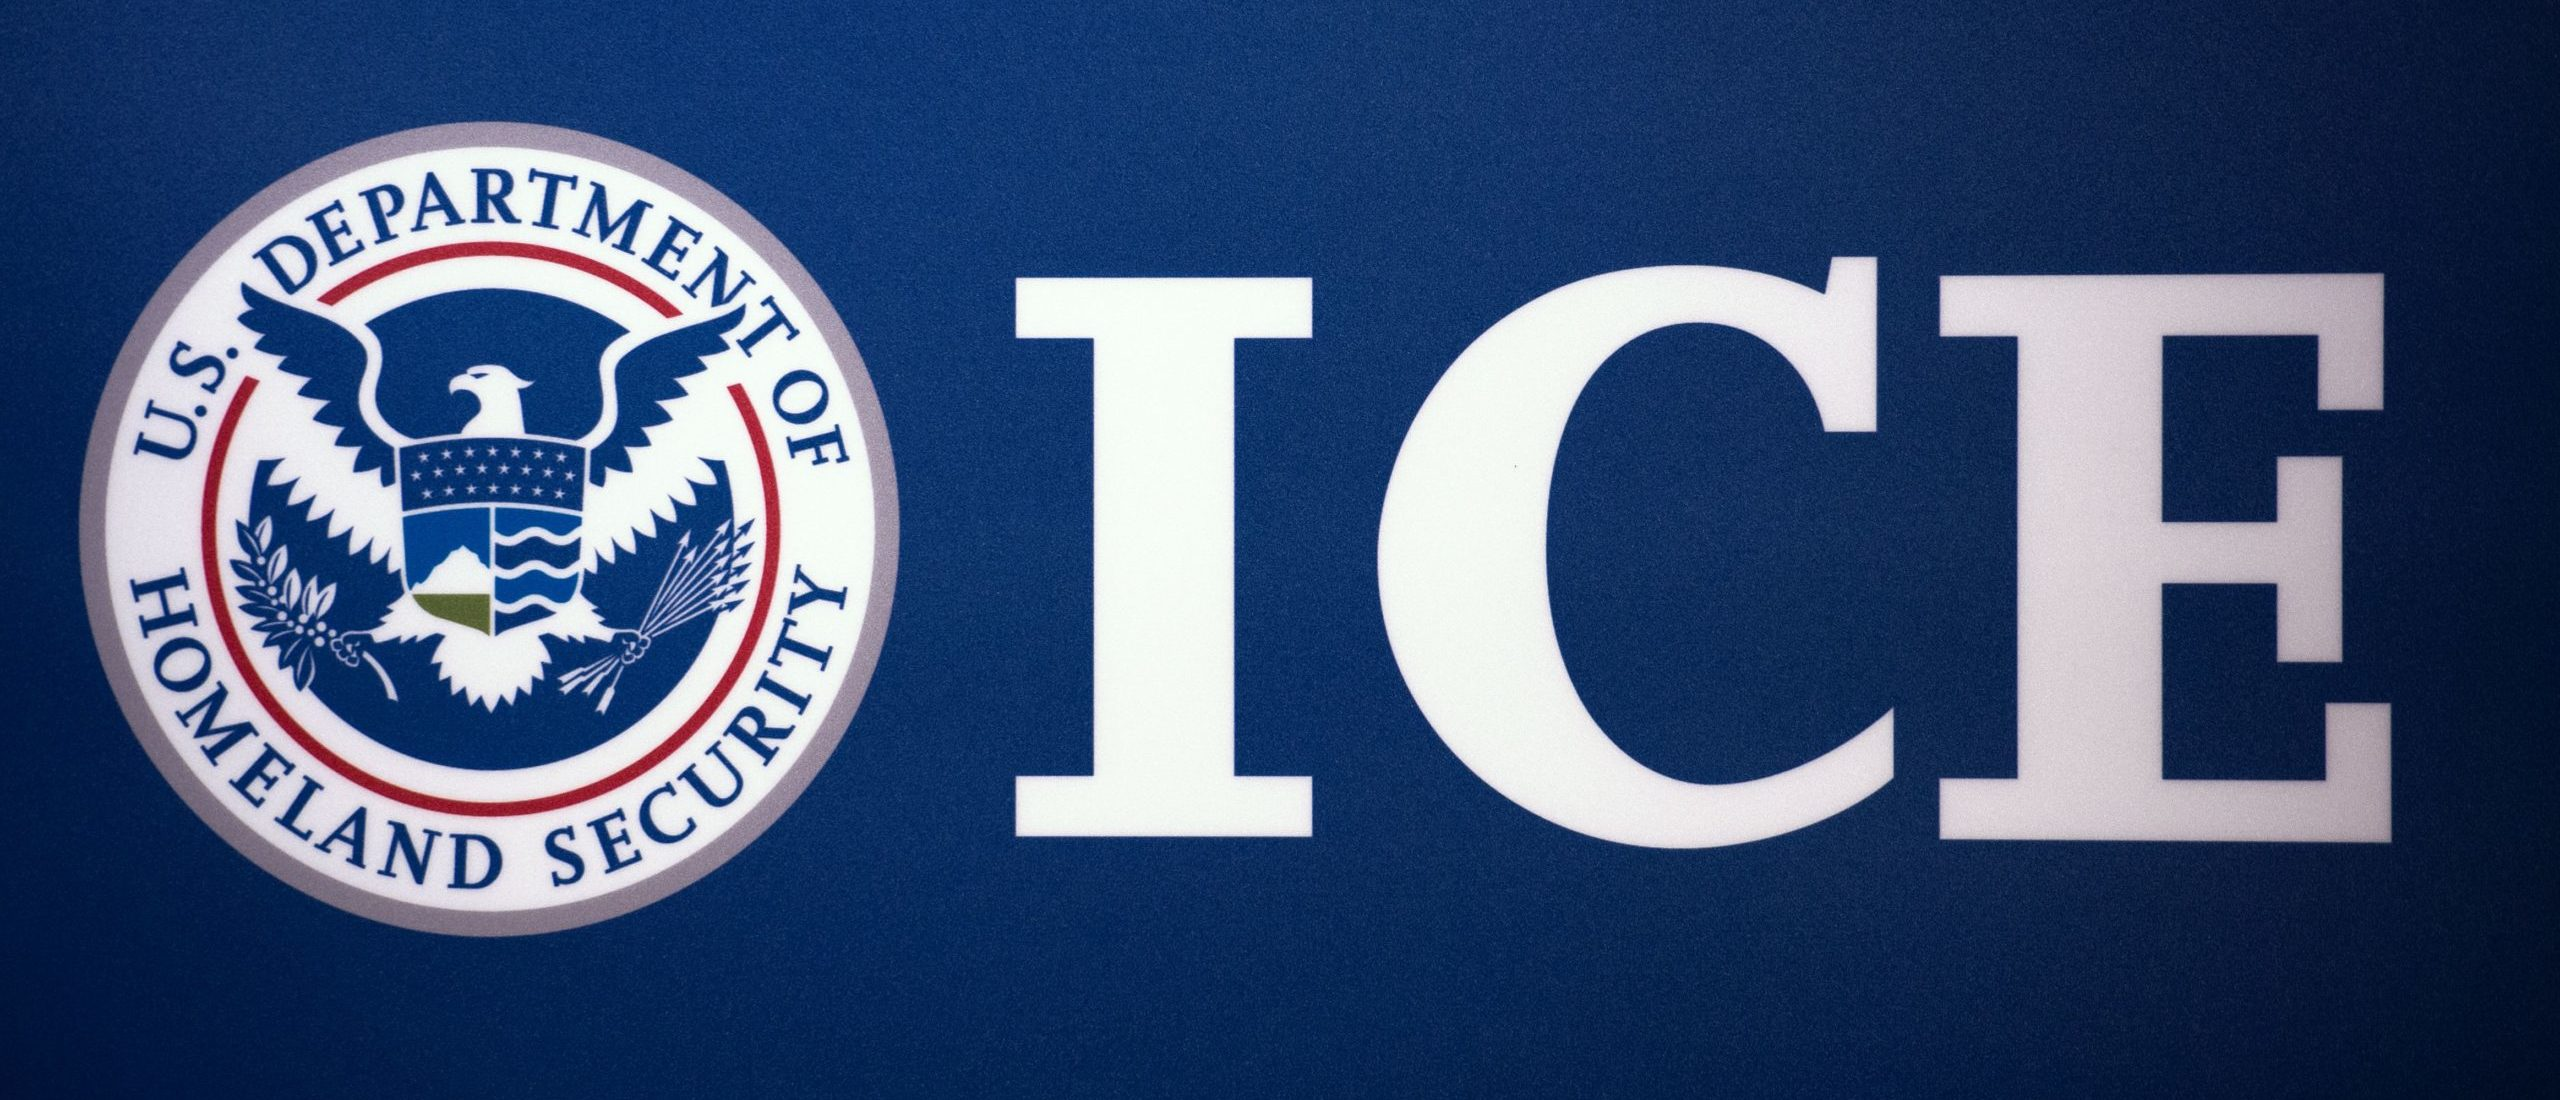 The Immigration and Customs Enforcement (ICE) seal is seen before a press conference discussing ongoing enforcement efforts to combat human smuggling along the Southwest border of the United States, July 22, 2014 at ICE headquarters in Washington, DC. AFP Photo/Paul J. Richards (PAUL J. RICHARDS/AFP via Getty Images)